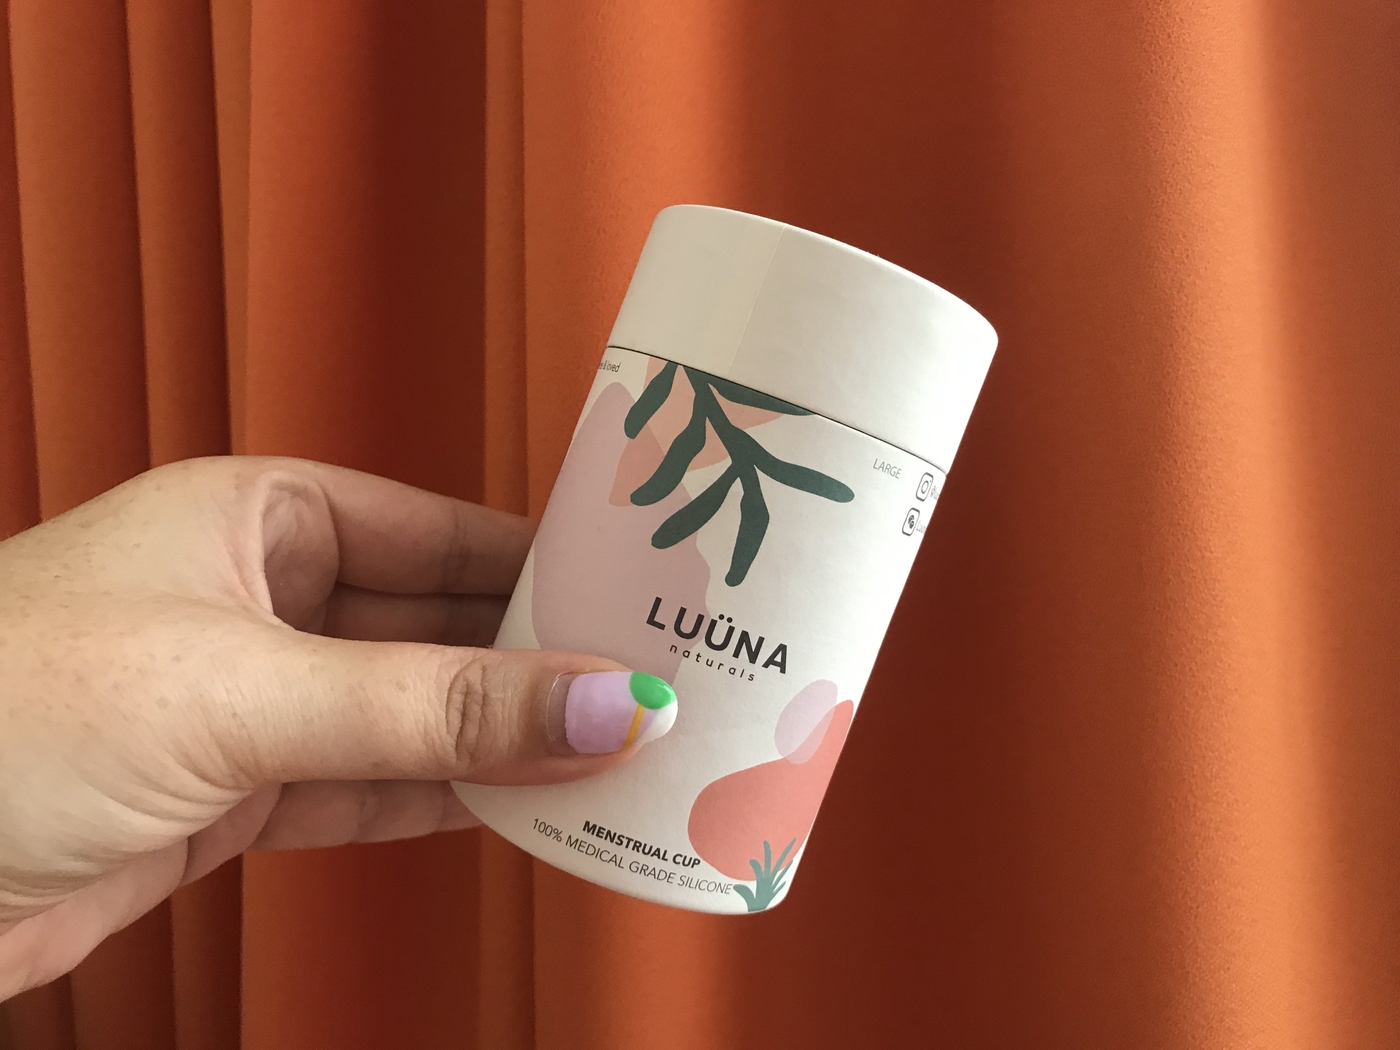 A period cup from Luuna Naturals changed my life forever